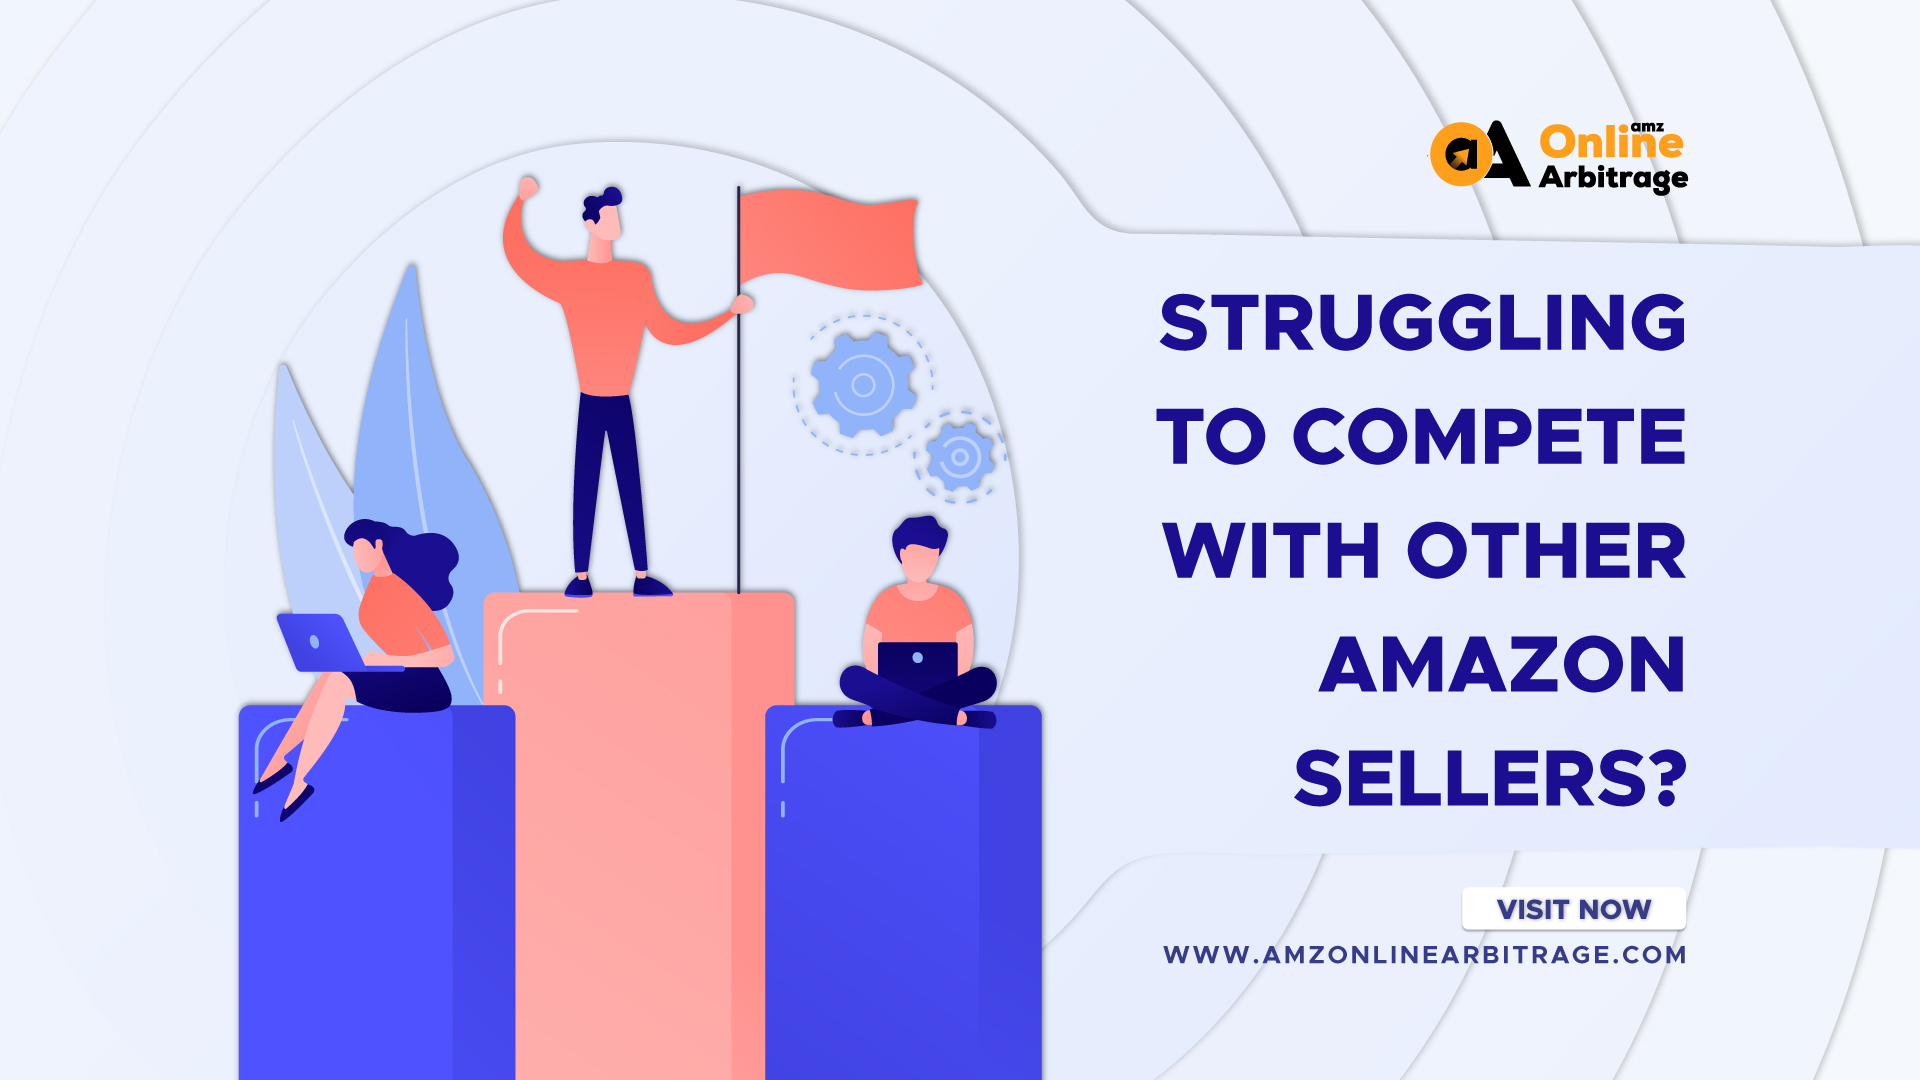 STRUGGLING TO COMPETE WITH OTHER AMAZON SELLERS?